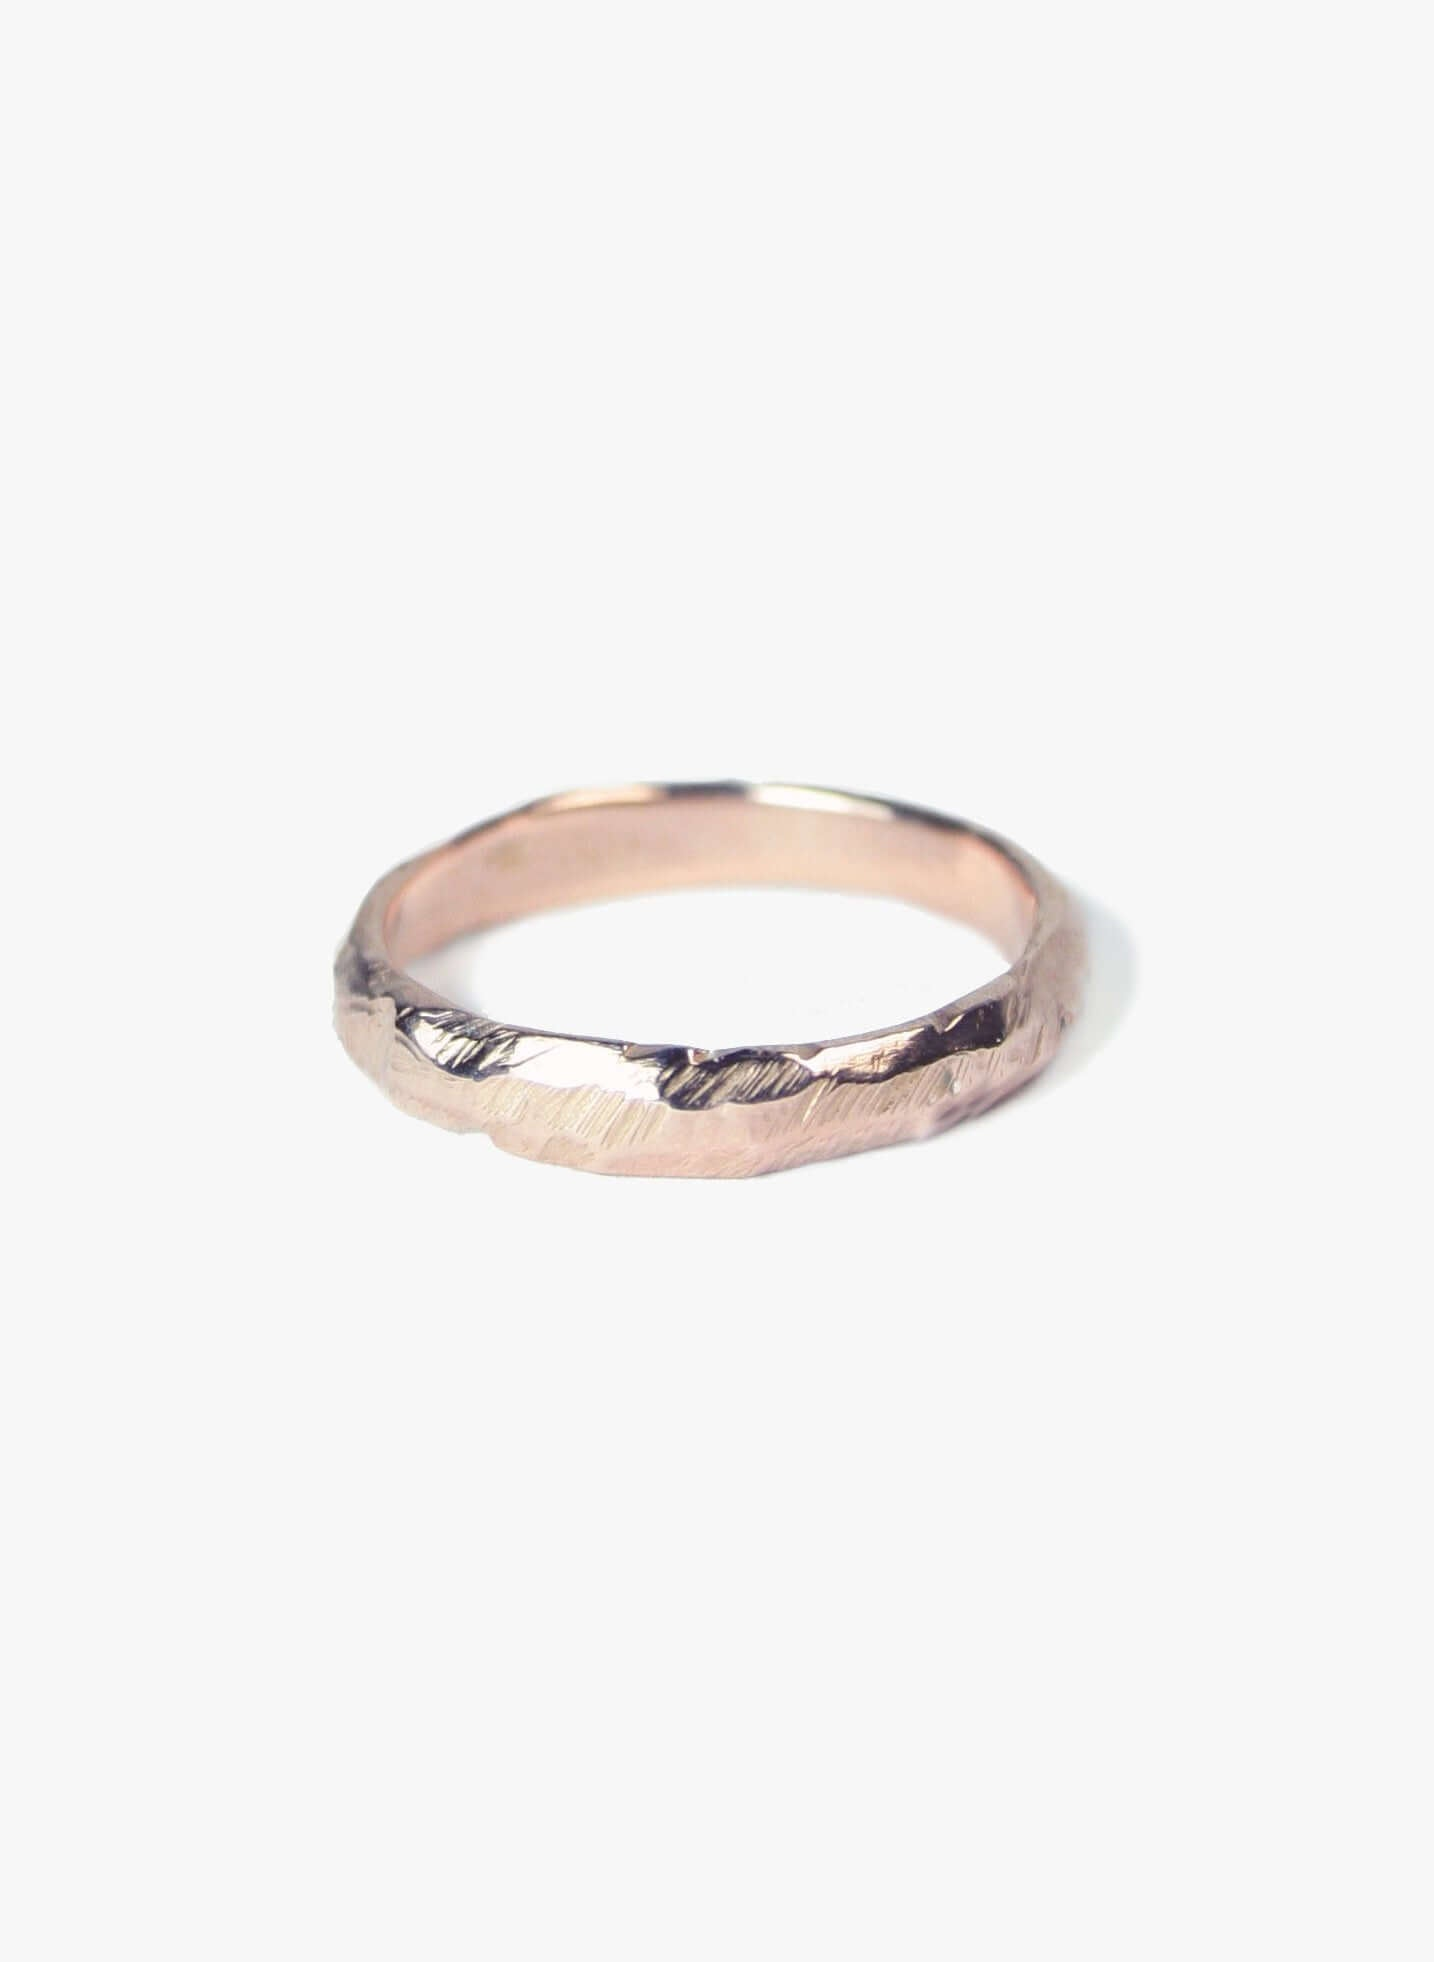 Rose gold ragged wedding band by Macha Brooklyn, NYC